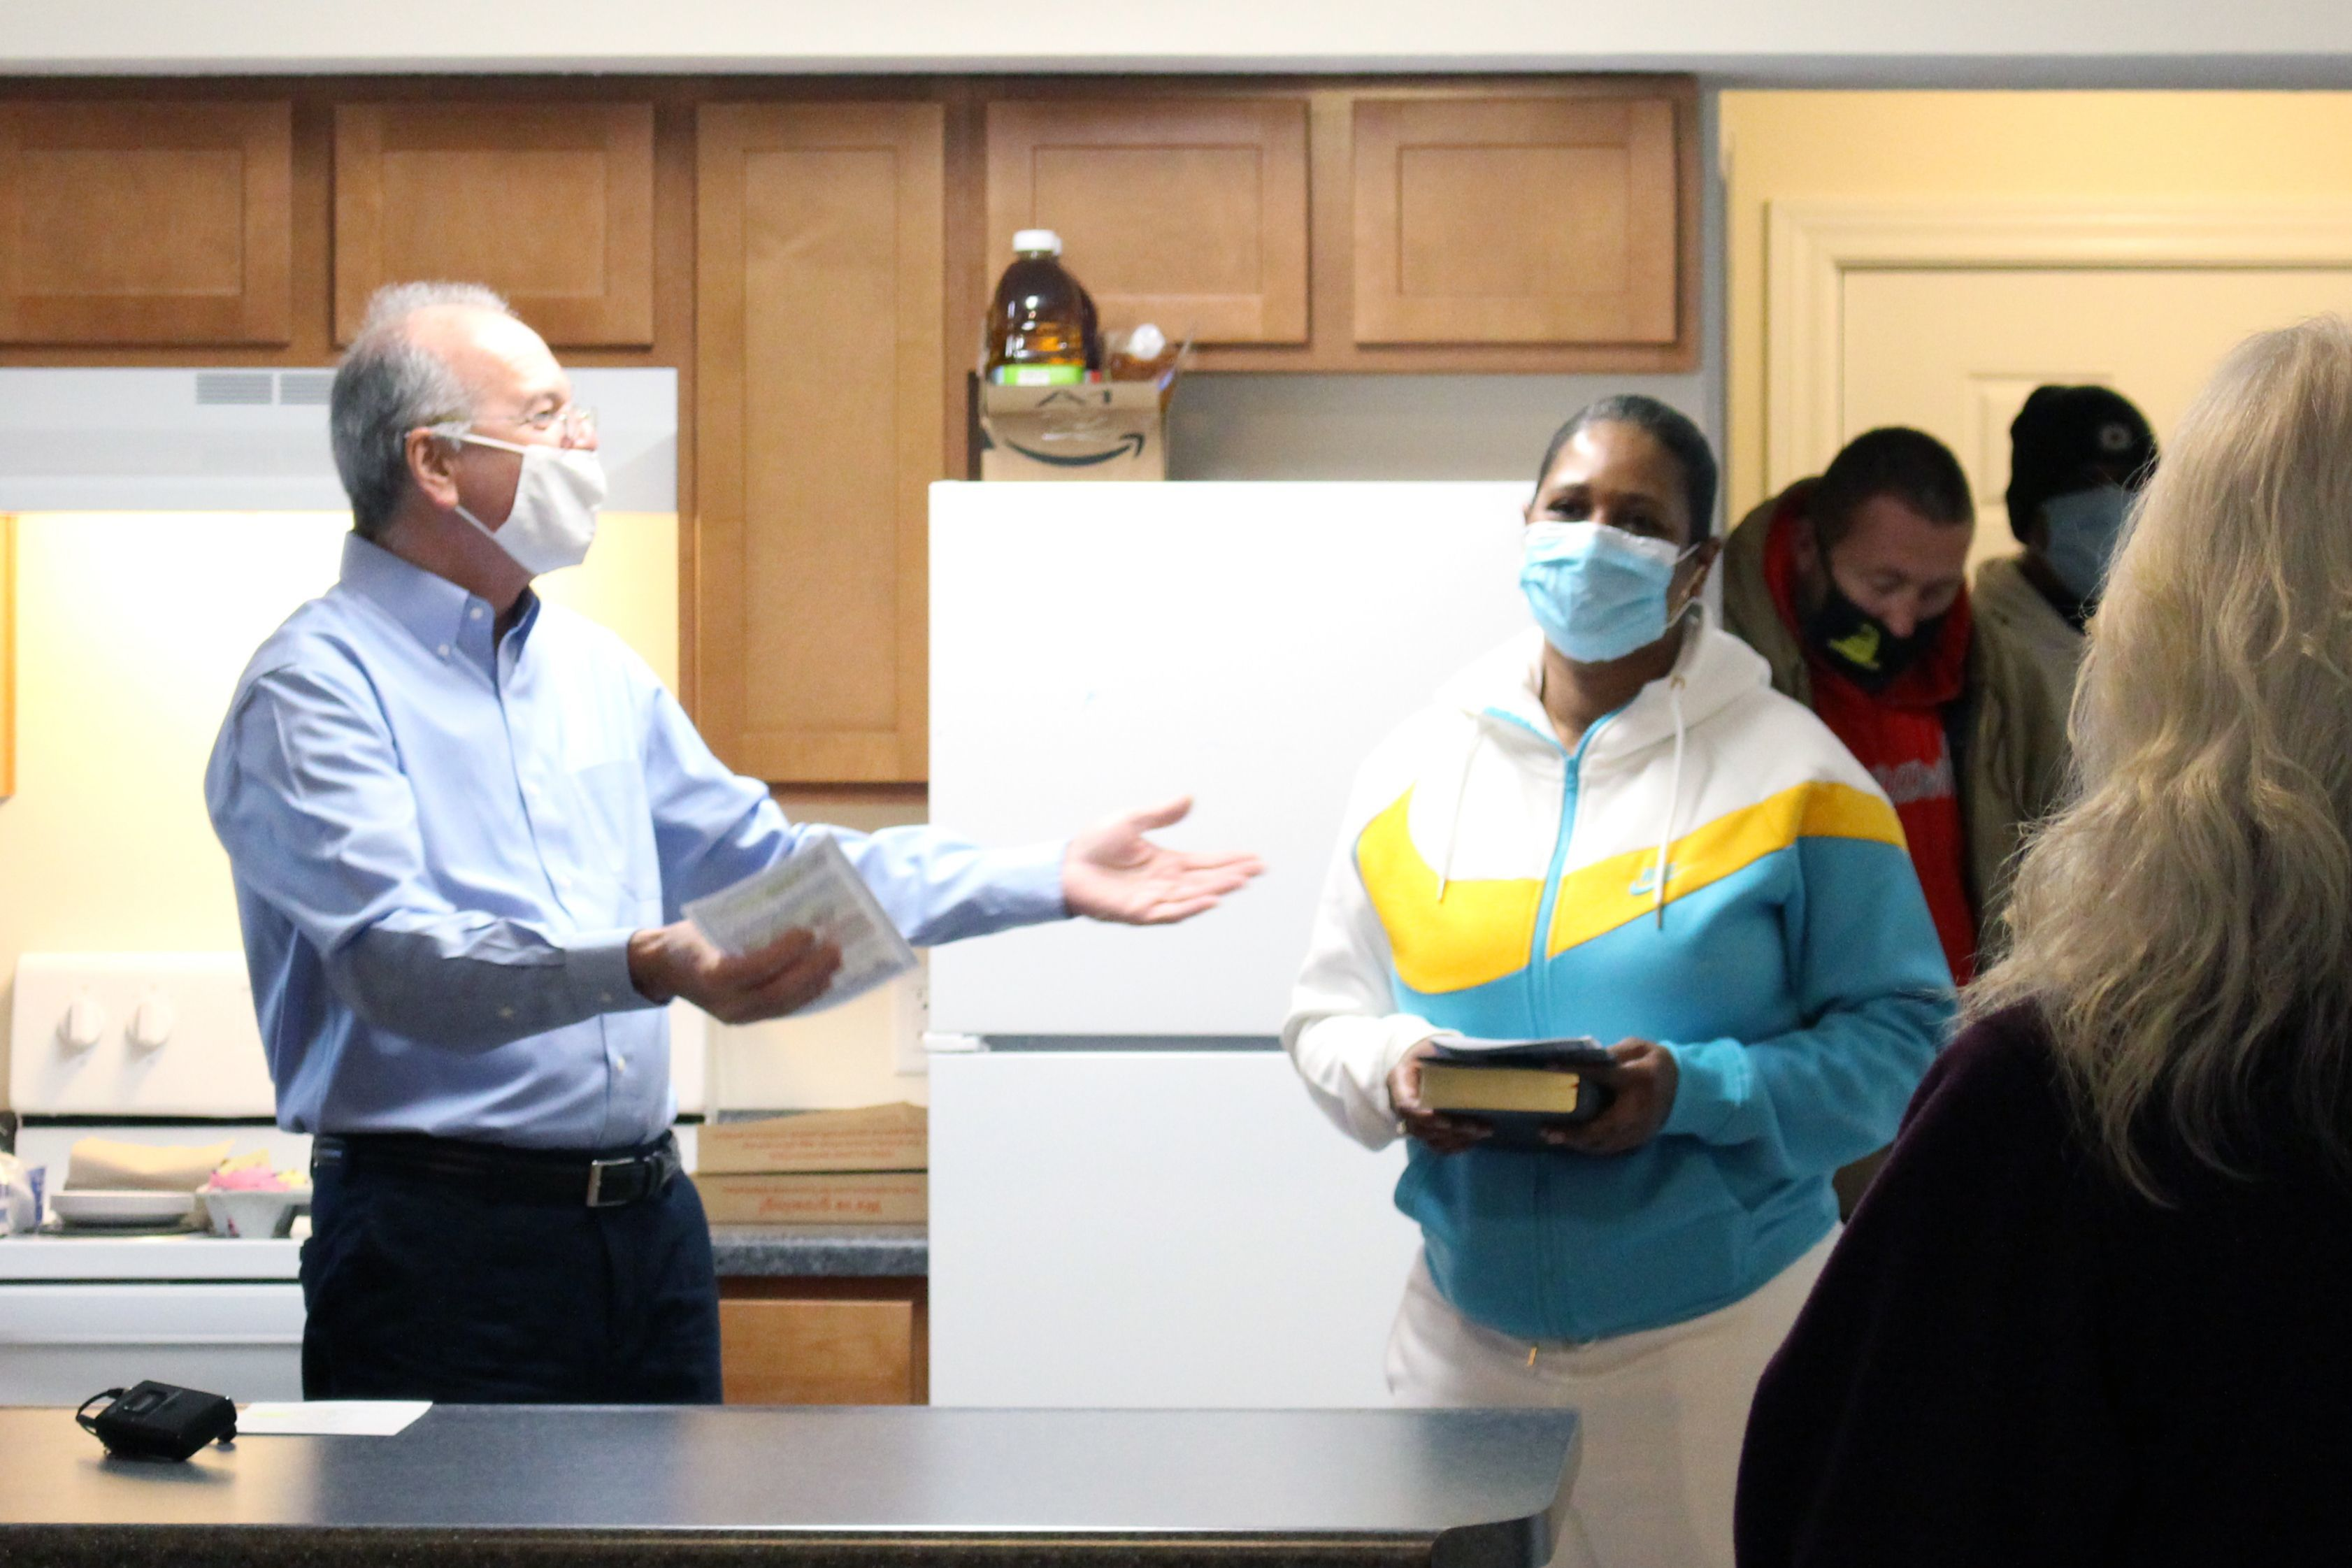 A Hard-Working Mother and Her family Have a New Home Thanks to Habitat for Humanity